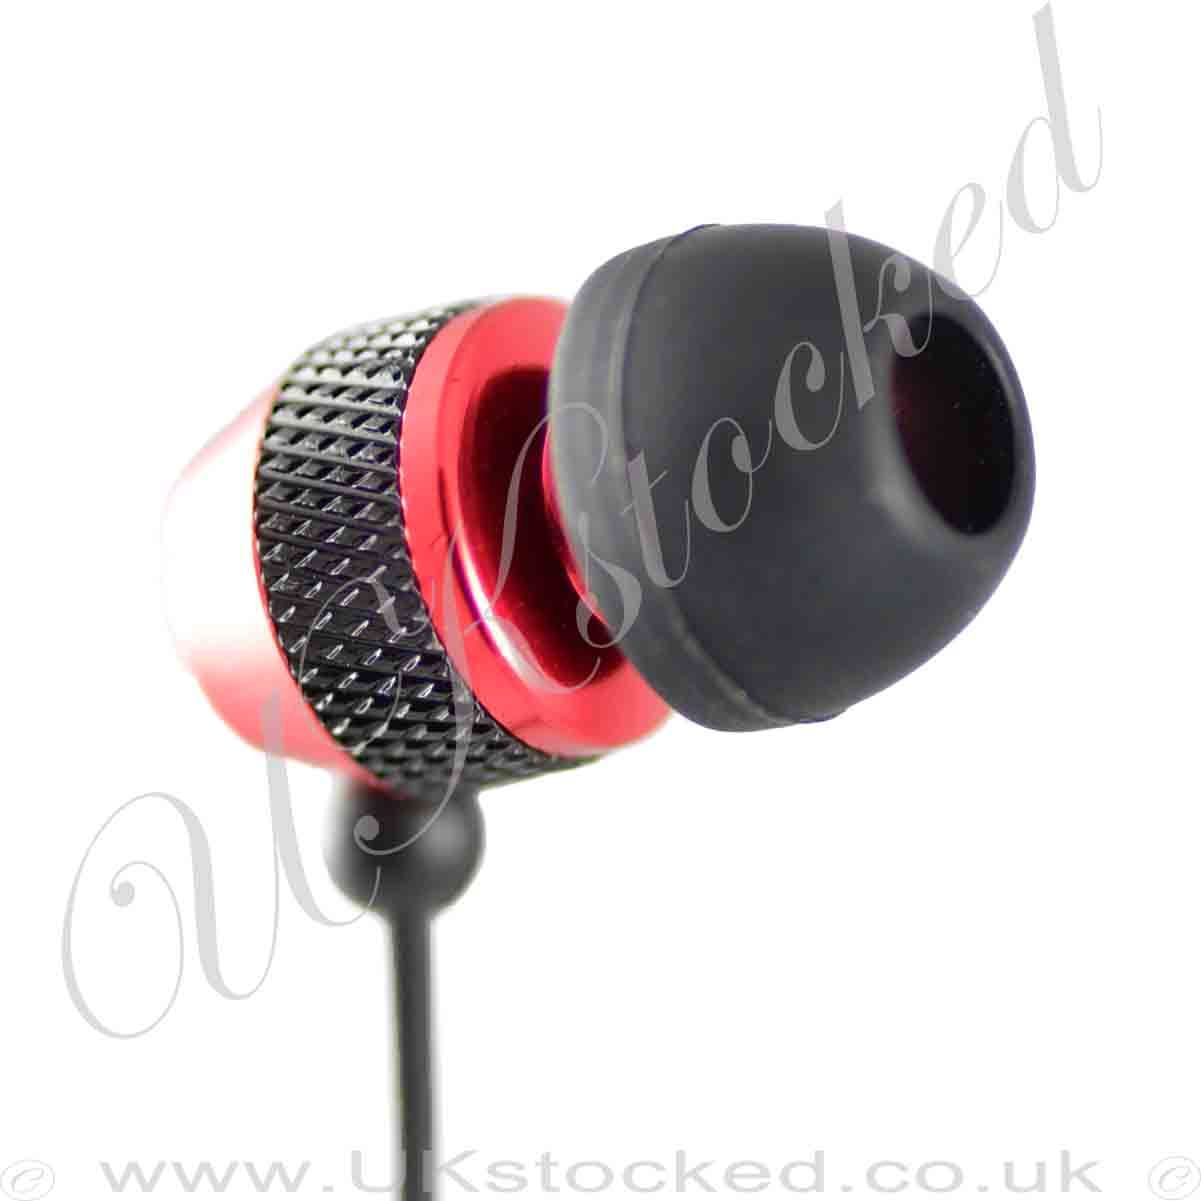 Red sony earphones - sony earphones classic